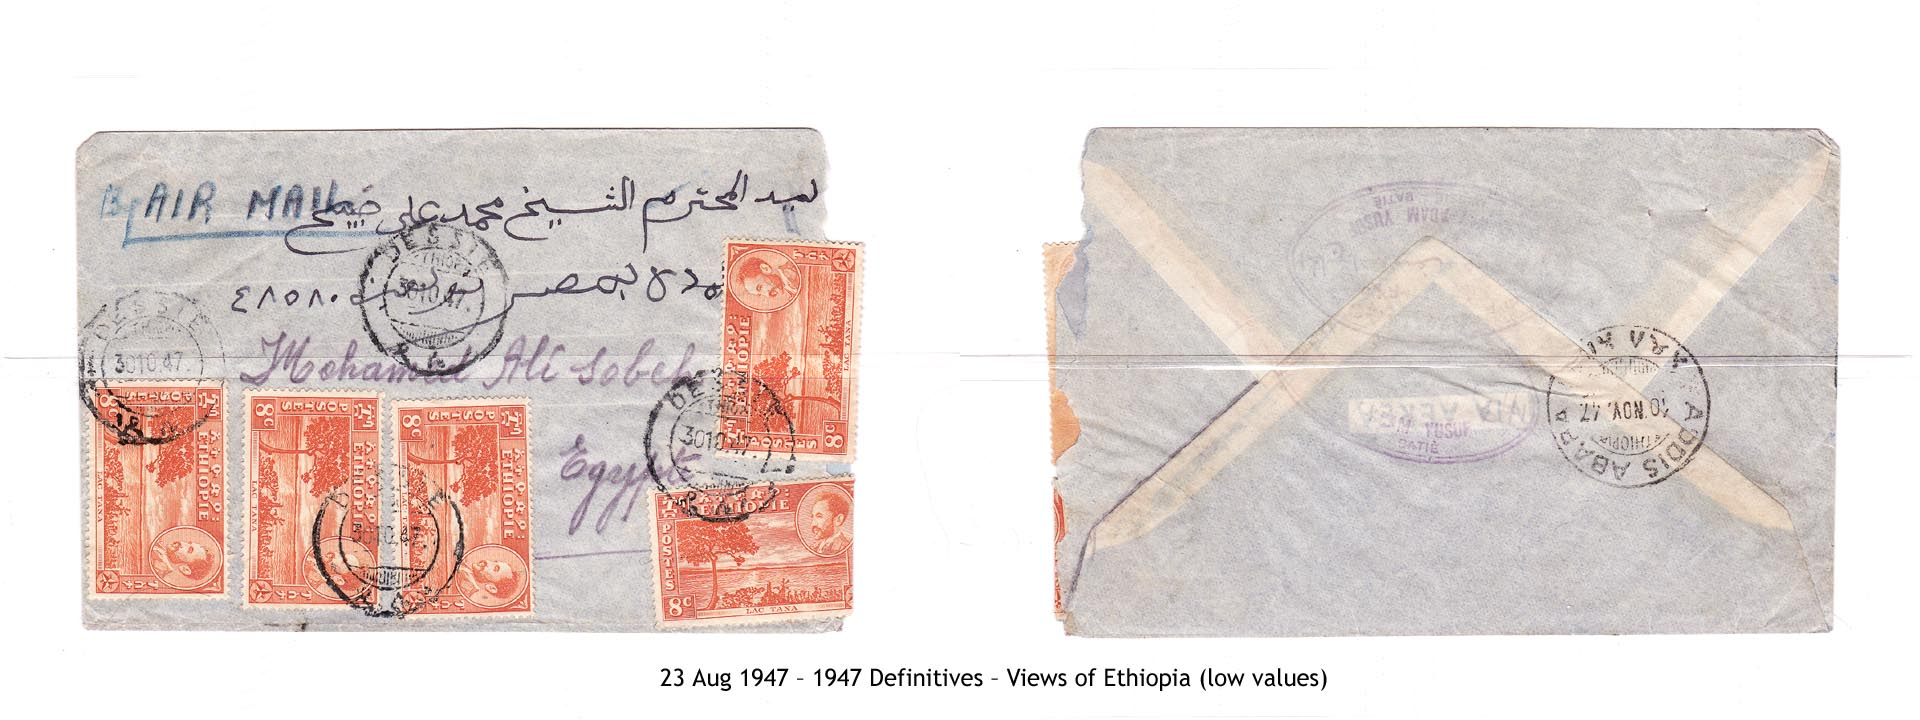 19470823 – 1947 Definitives – Views of Ethiopia (low values)